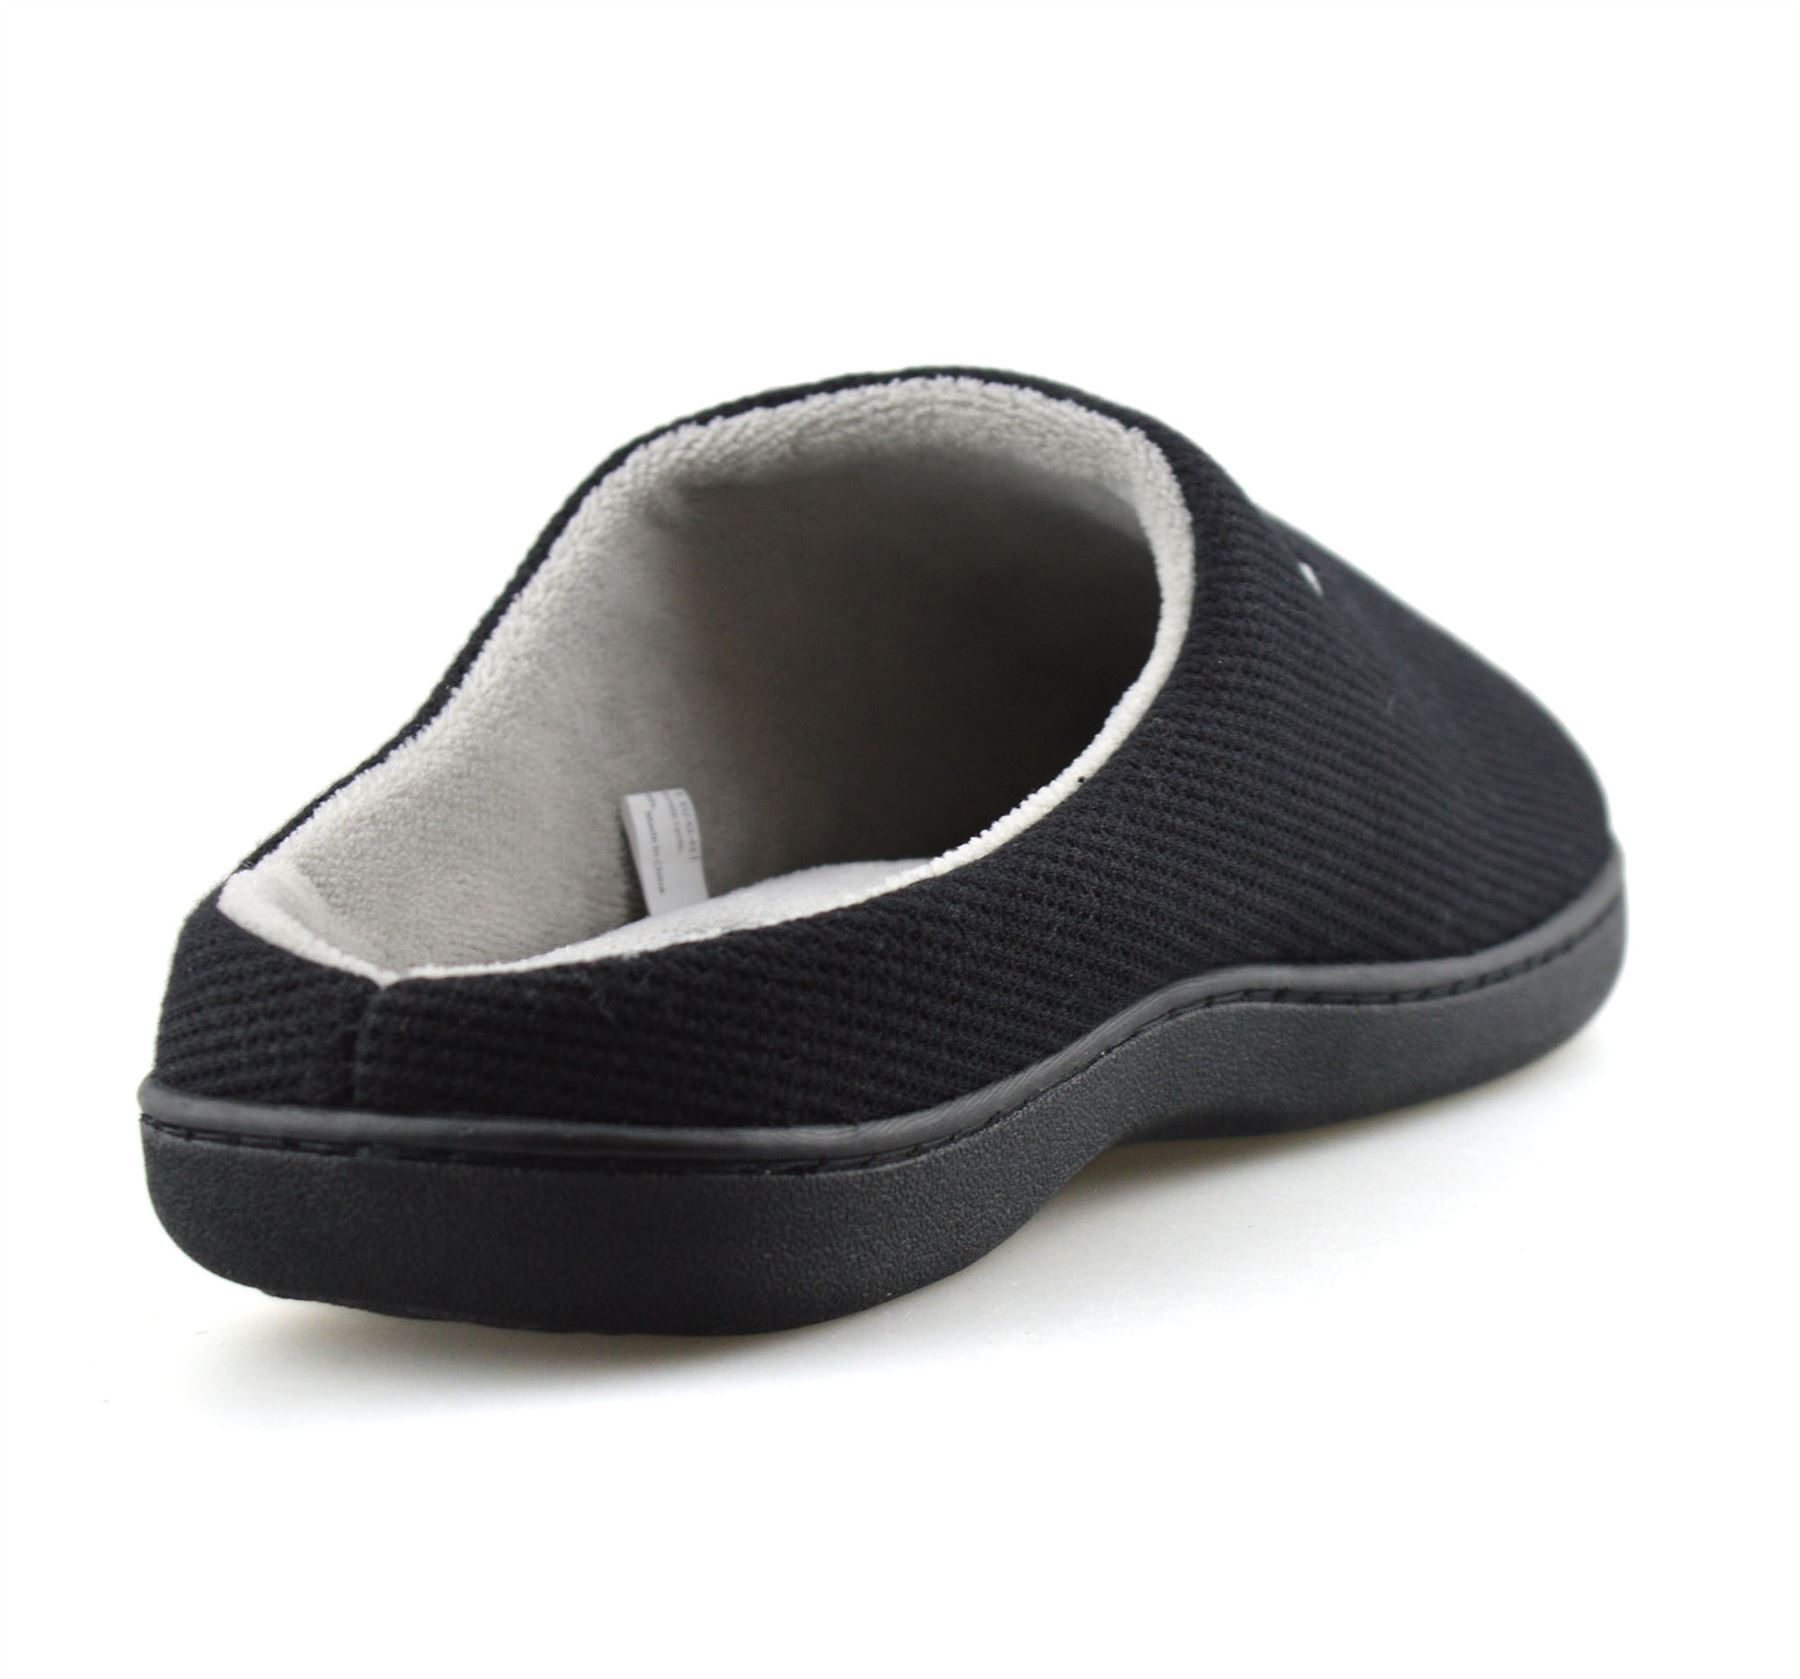 Mens-Memory-Foam-Warm-Fleece-Lined-Cotton-Slippers-Slip-On-Clog-Mules-Shoes-Size thumbnail 14